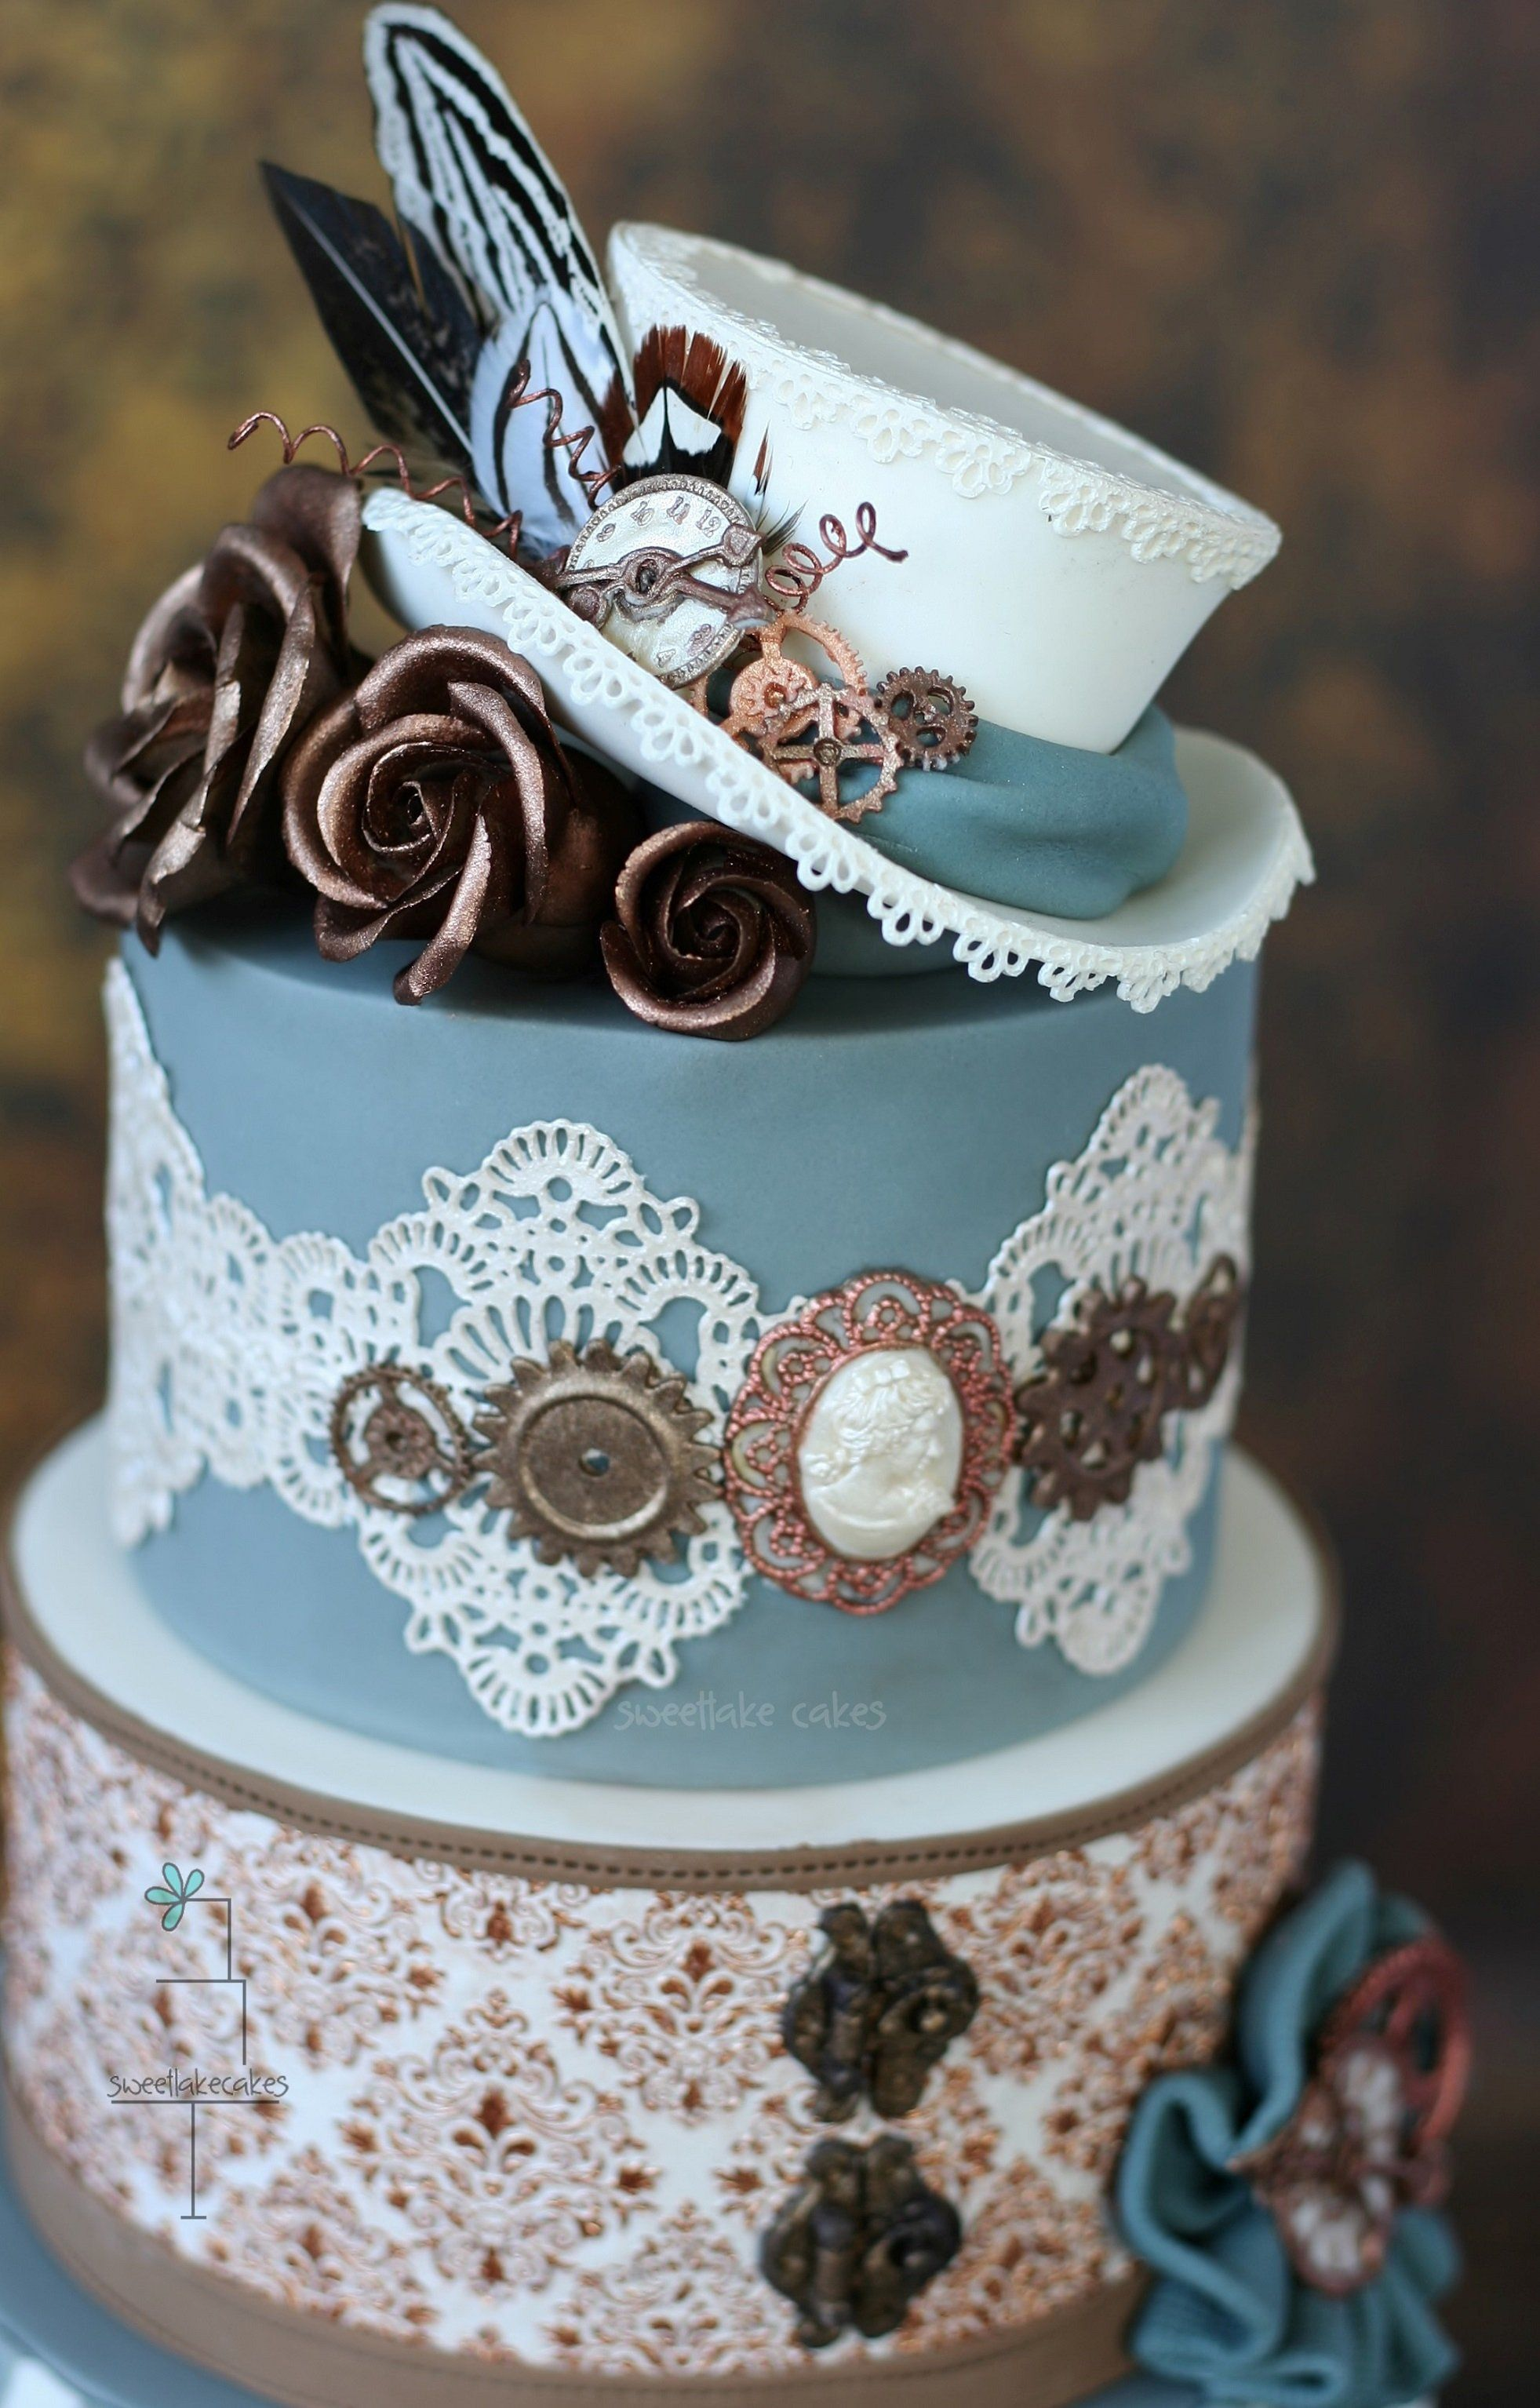 Gorgeous Steampunk Wedding Cake In Blueetallics I Think It Should Have 2 Hats As A Topper Surely